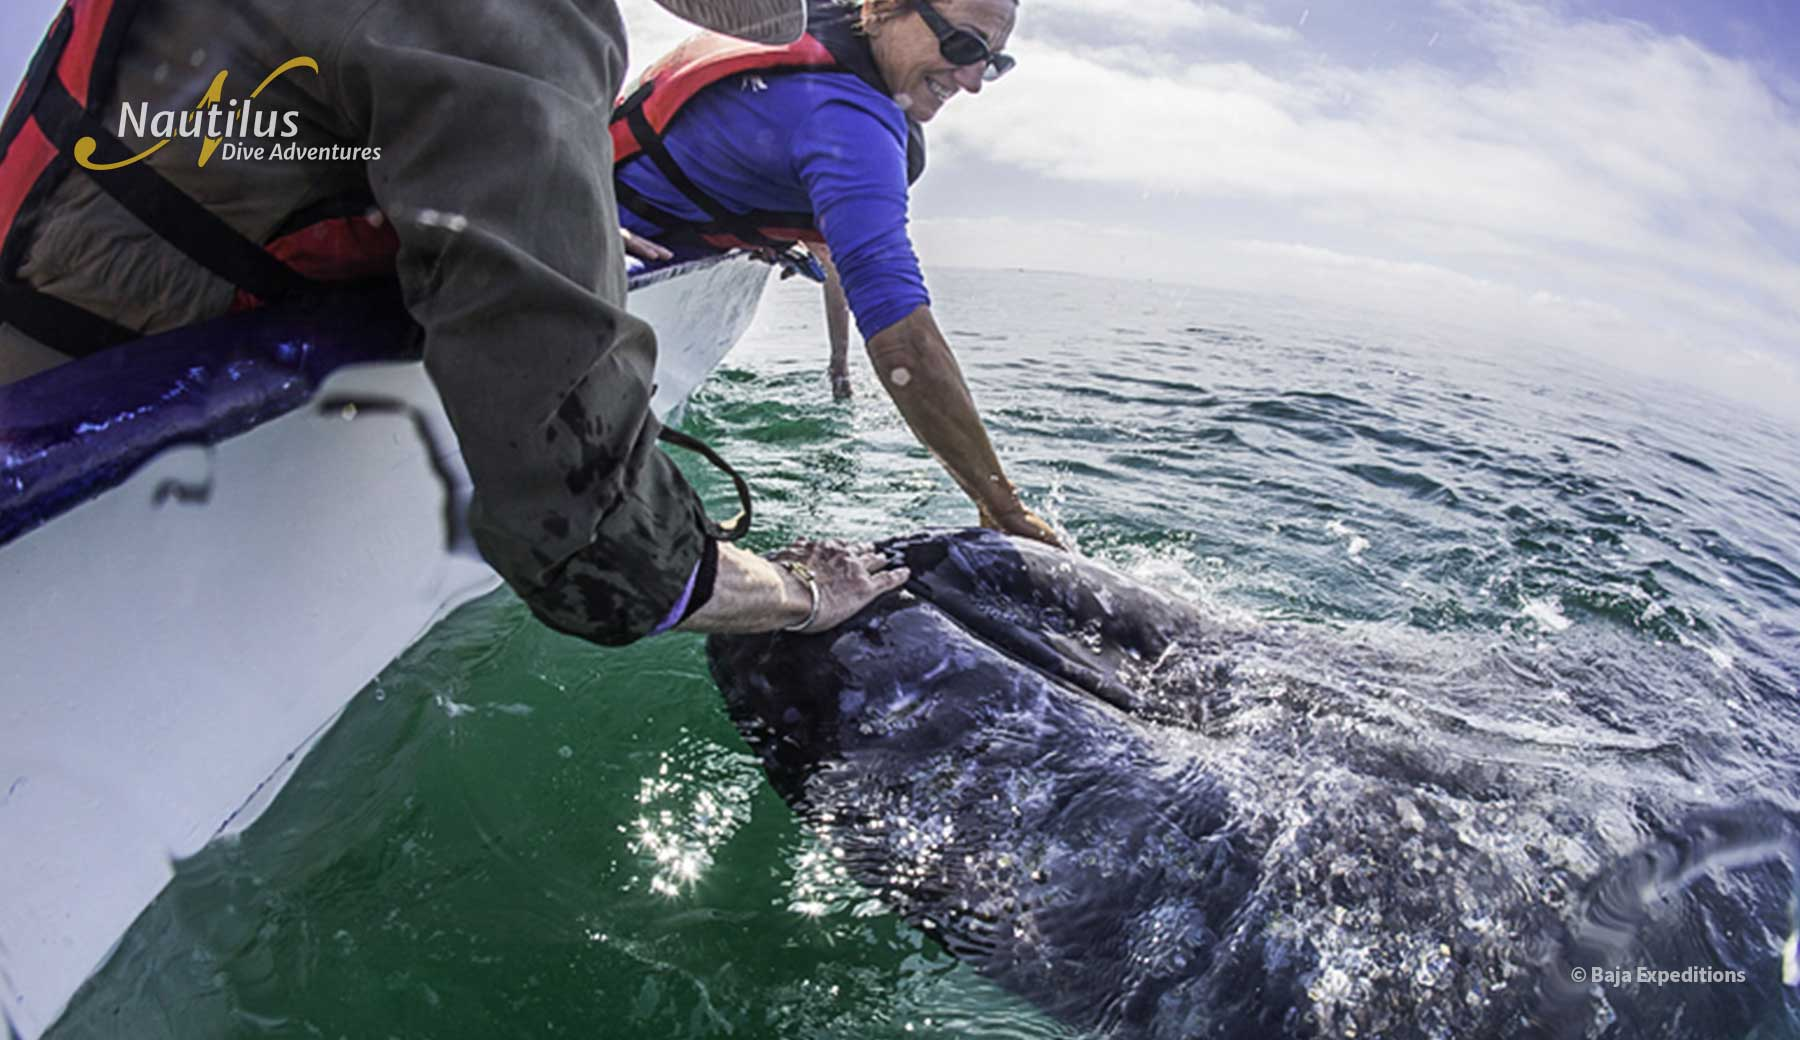 Grey whale interacting with people on the boat